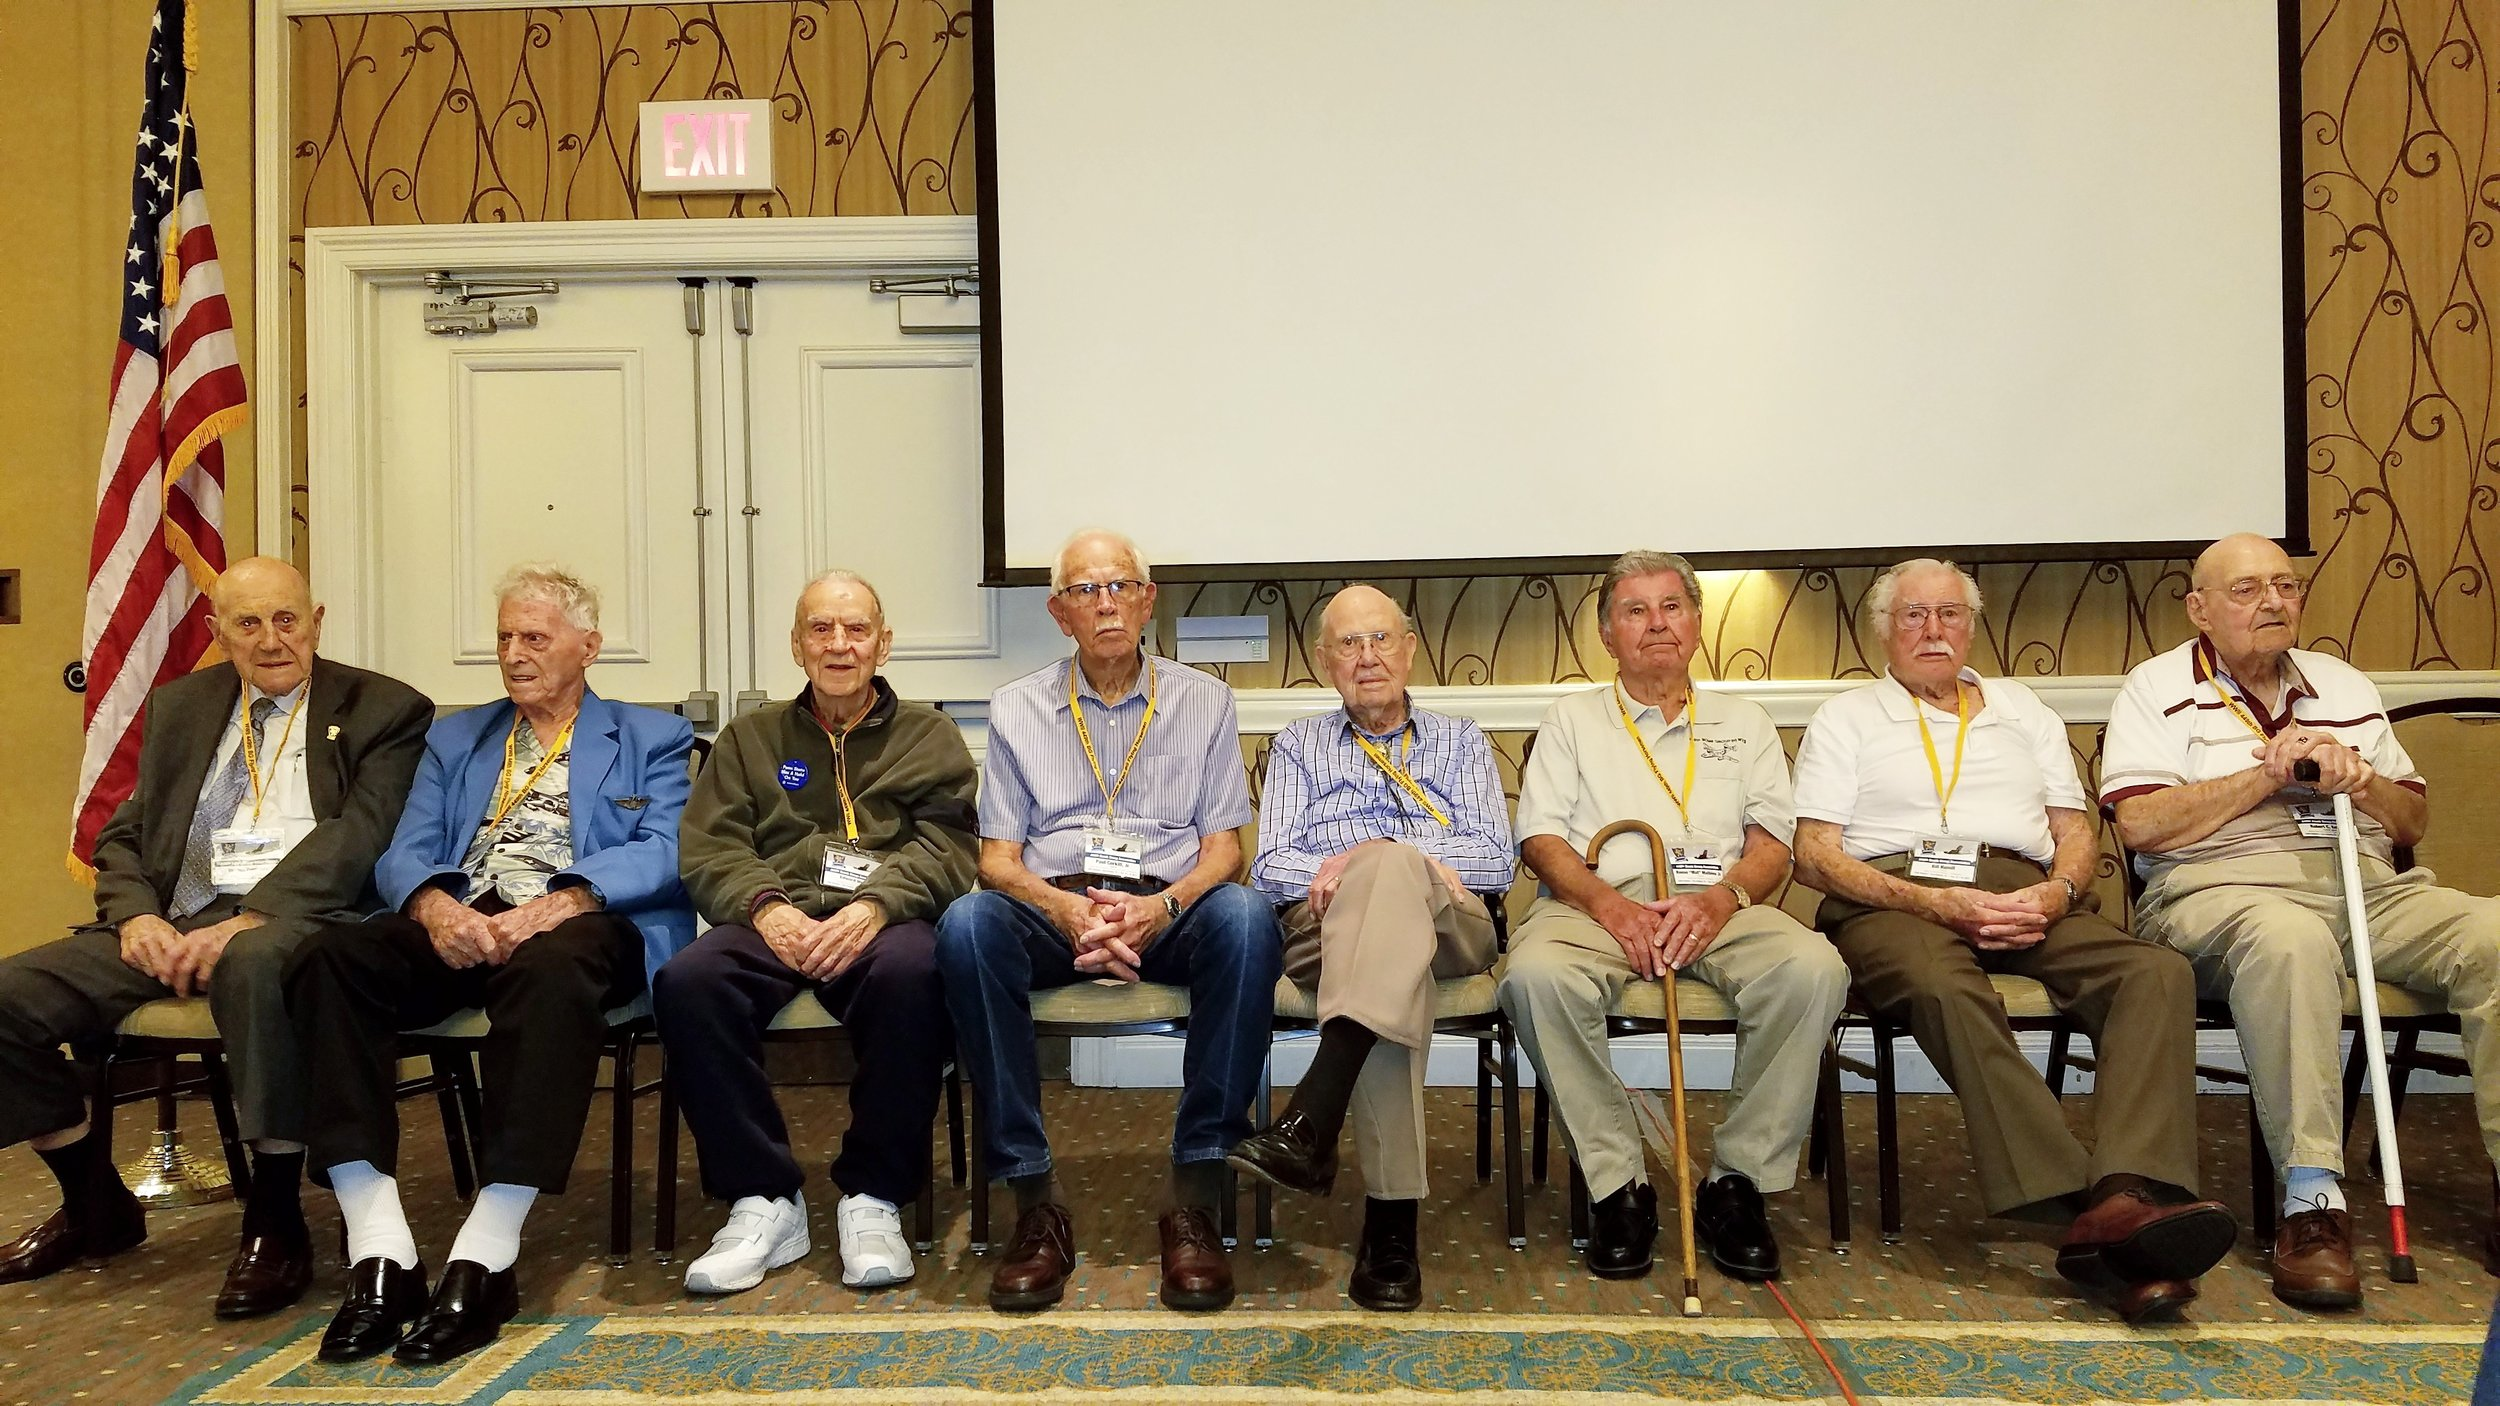 The remarkable men of the 449th Bomb Group Reunion. Nearly all of the men pictured flew between 42 and 51 bombing missions during the war, several of them surviving crashes, and a few becoming POWs on the Eastern front. Brave men indeed.